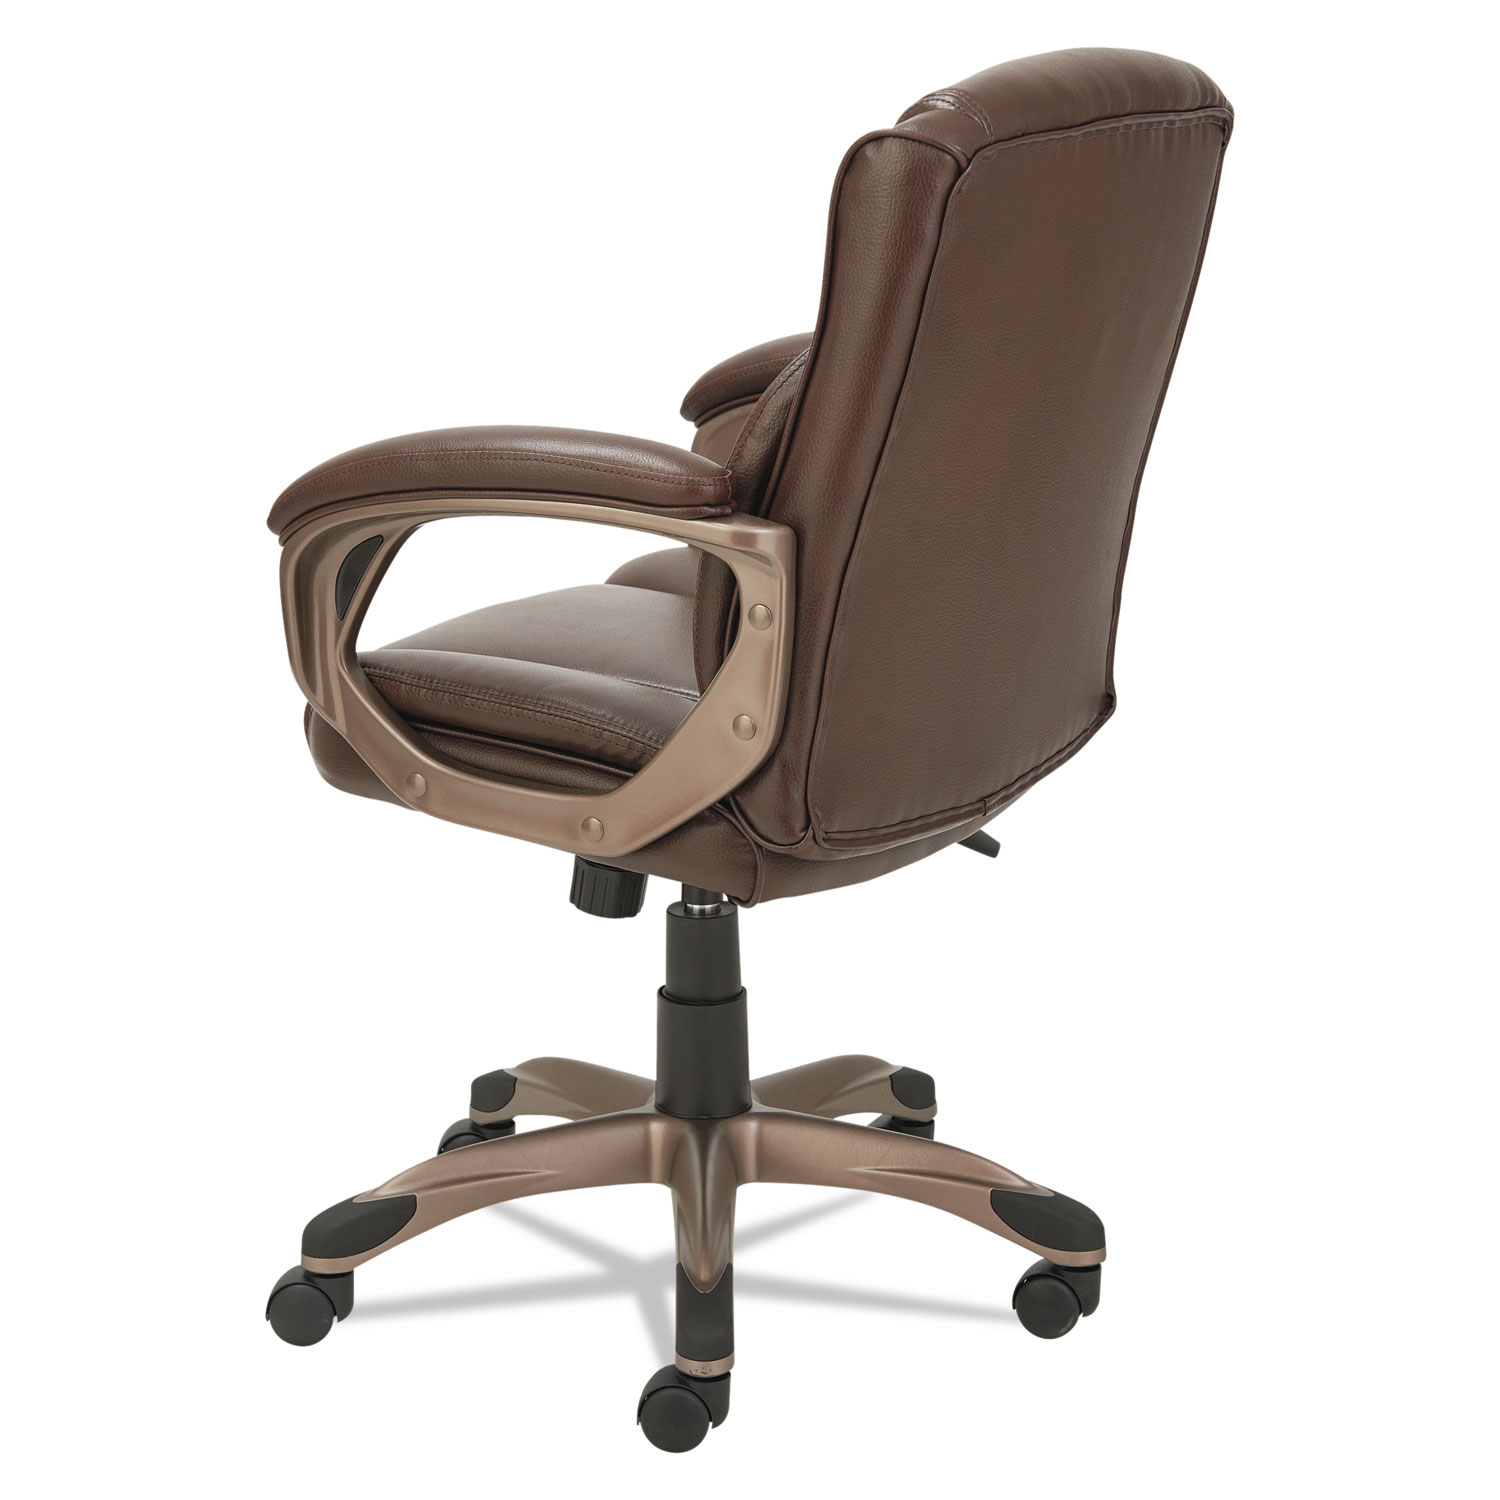 Delicieux Alera Veon Series Low Back Leather Task Chair W/Coil Spring Cushion, Brown